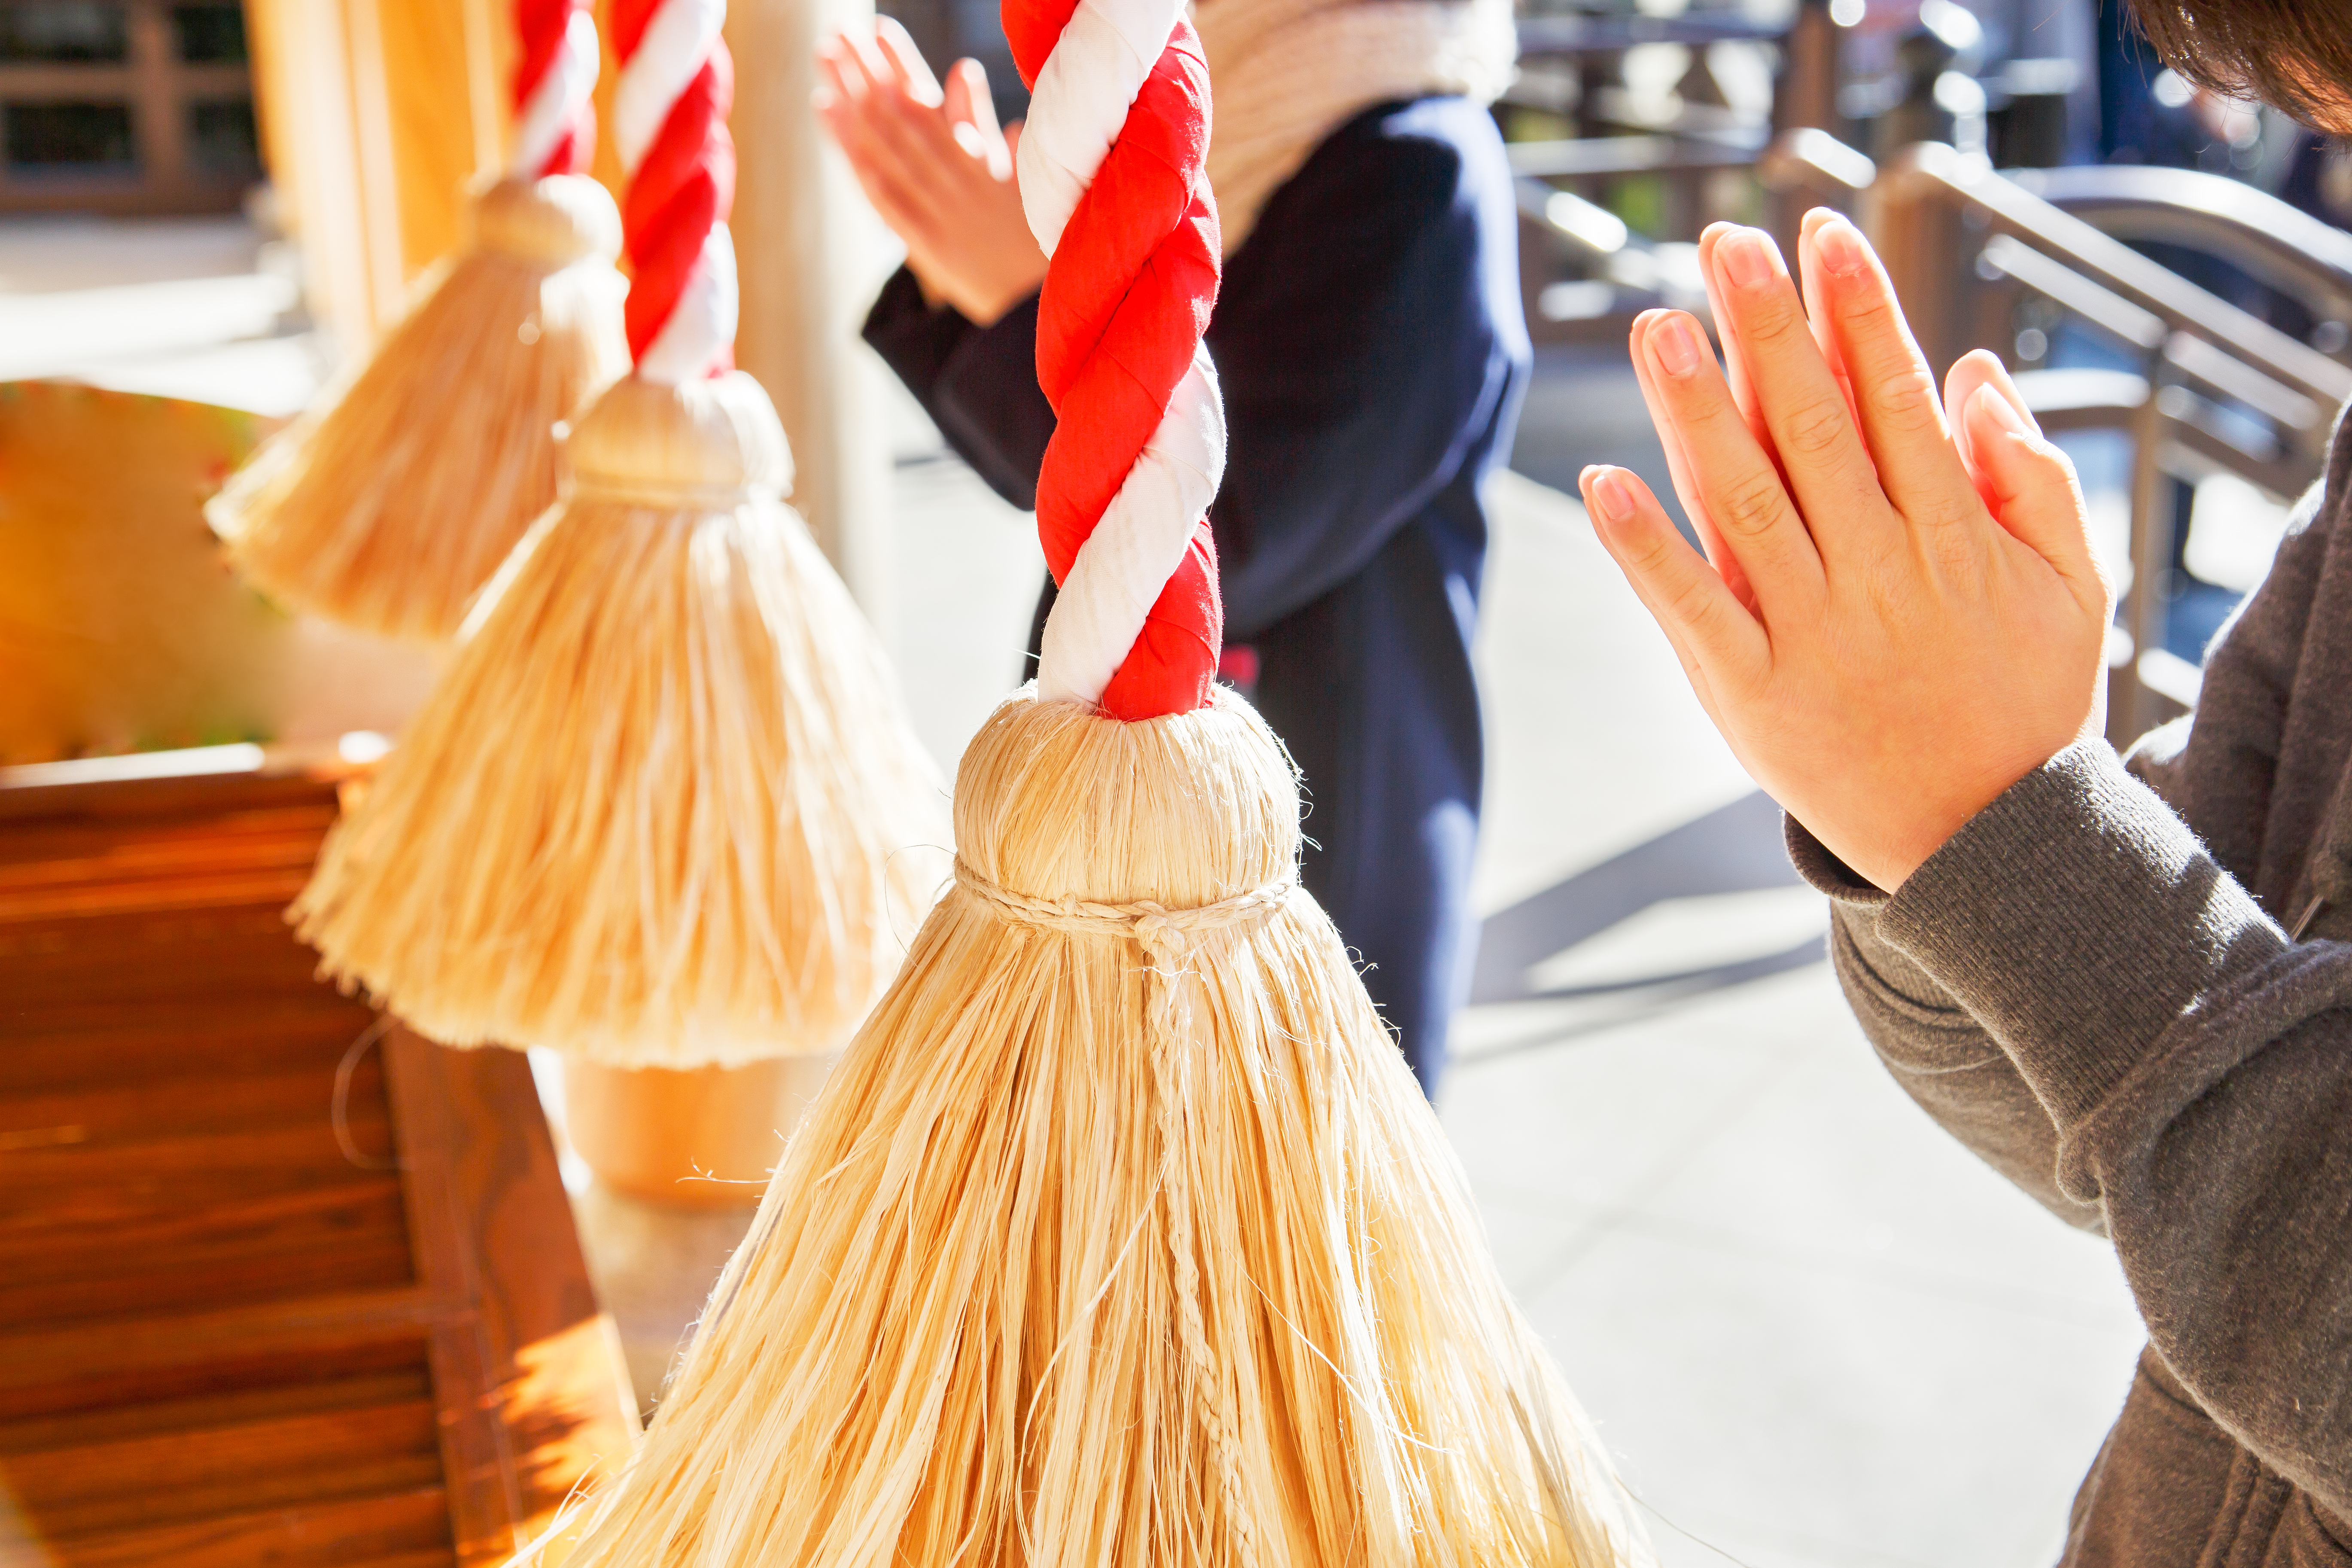 Japanese people visit a local temple on New Year's Day